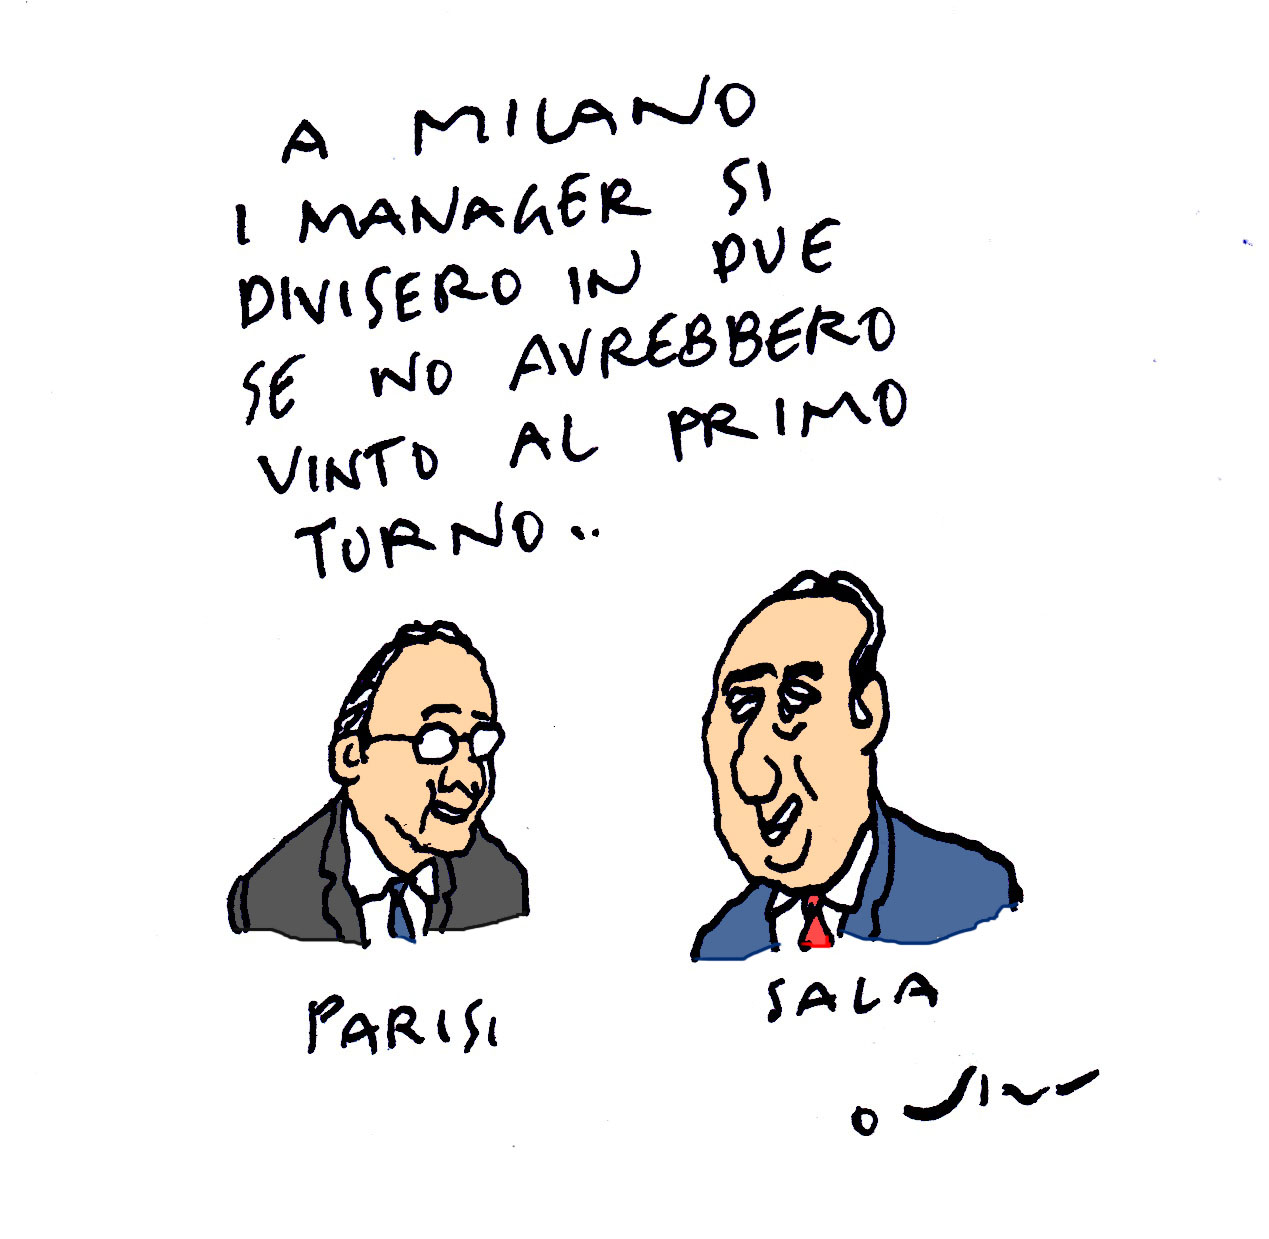 manager a KKmilano